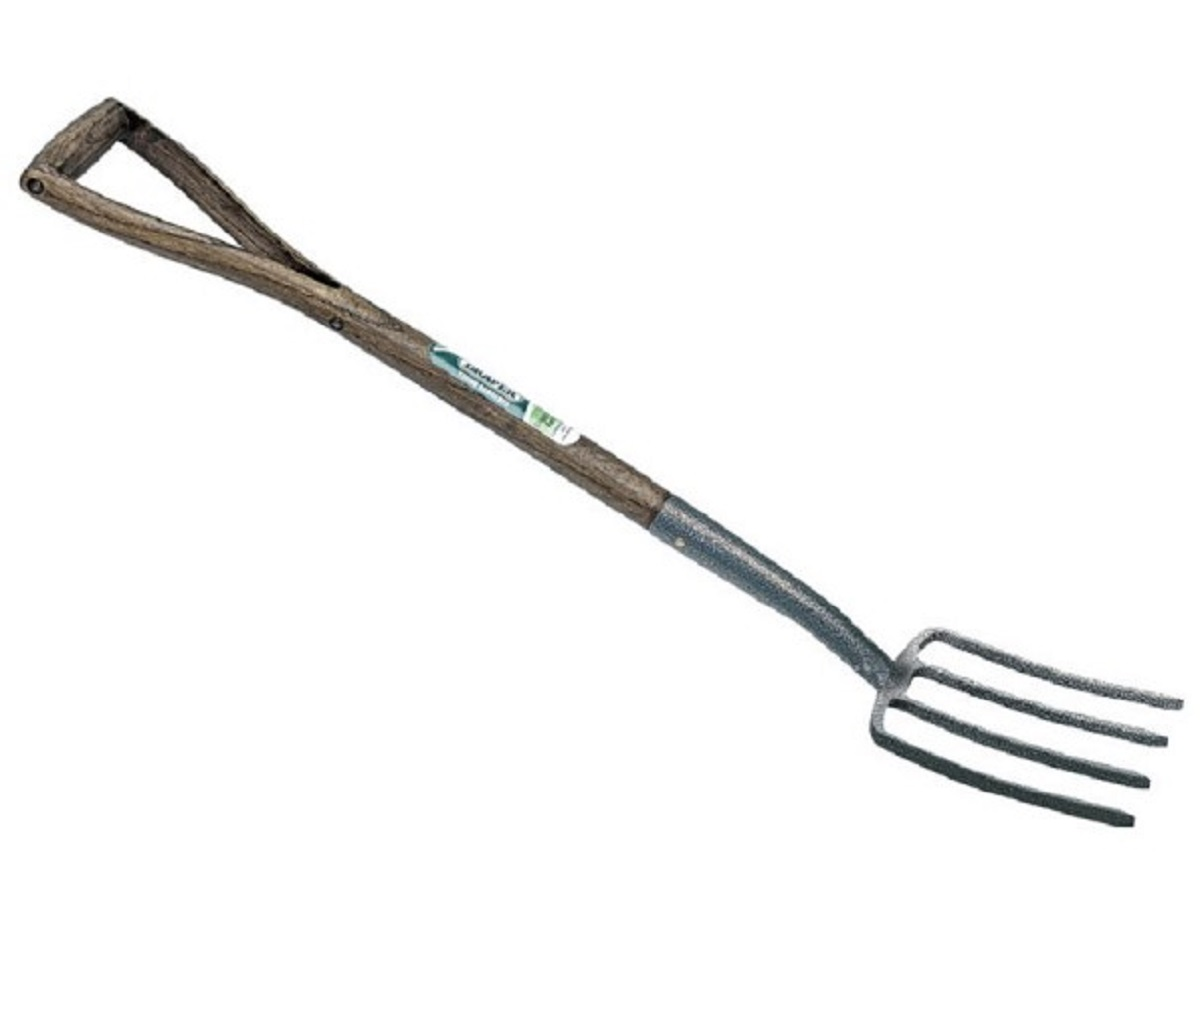 Garden Fork For Children Child Sized Gardening Tools